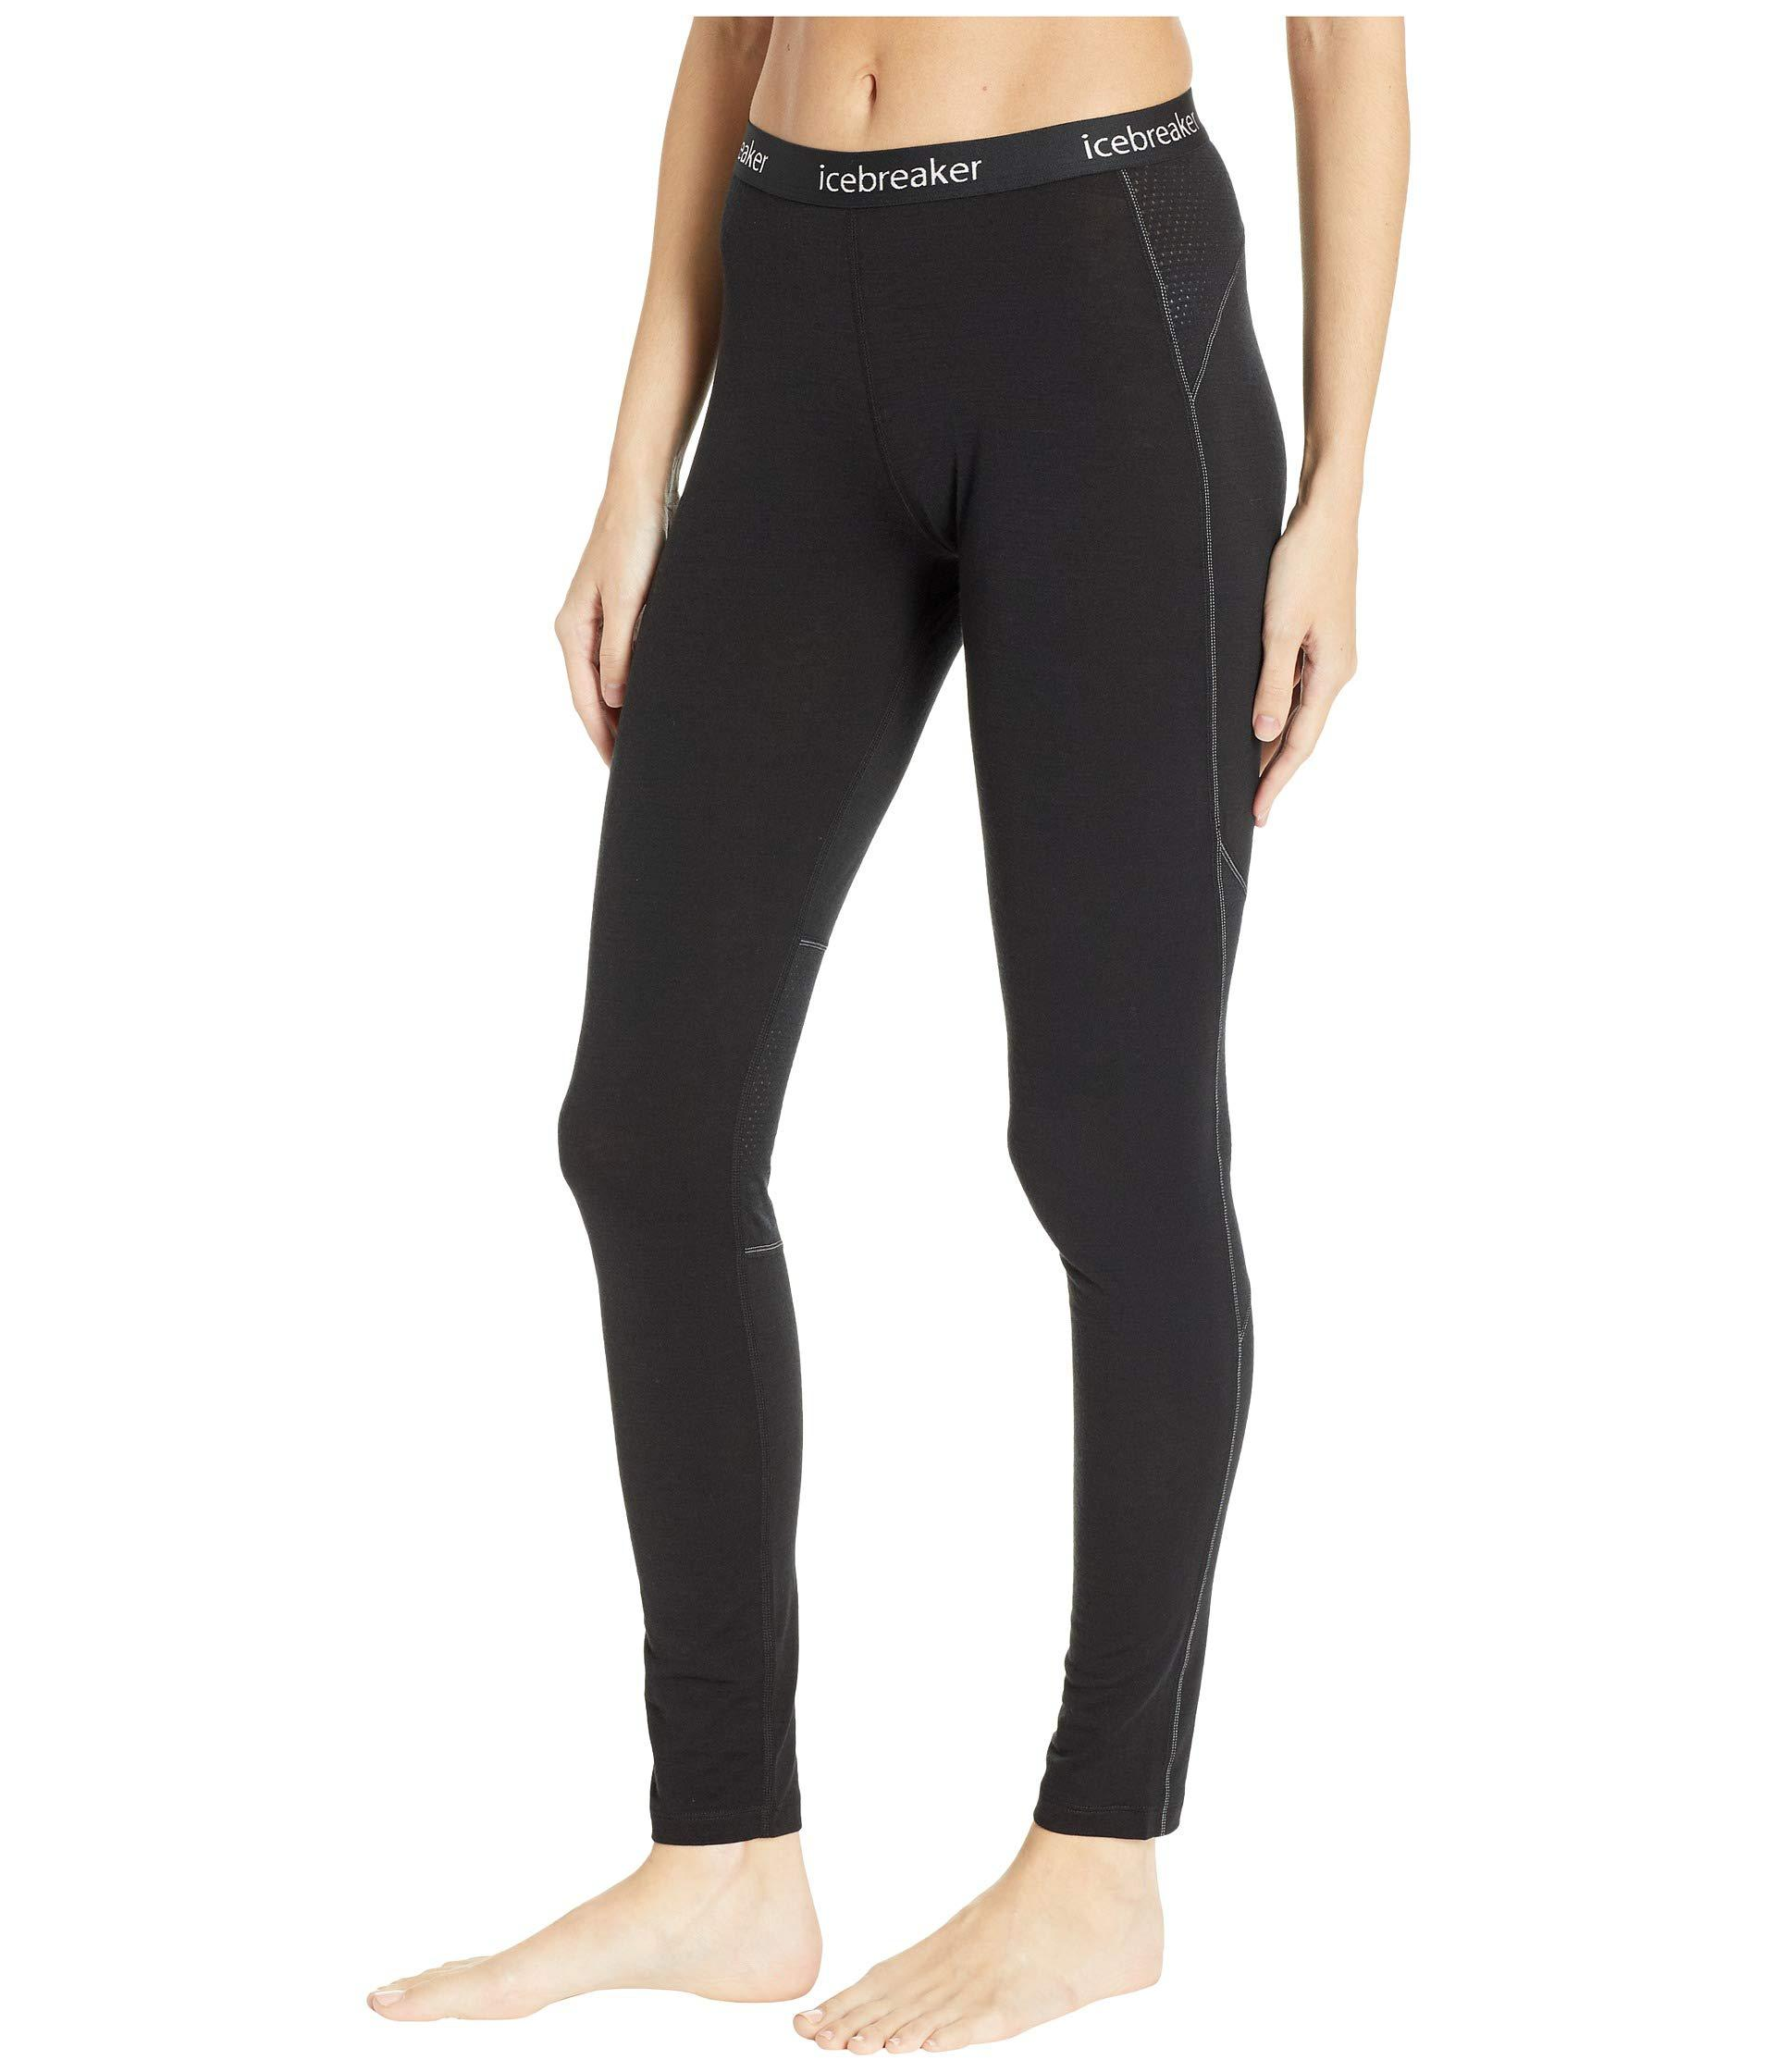 70673eca937 Lyst - Icebreaker 150 Zone Merino Base Layer Leggings (black/mineral) Women's  Casual Pants in Black